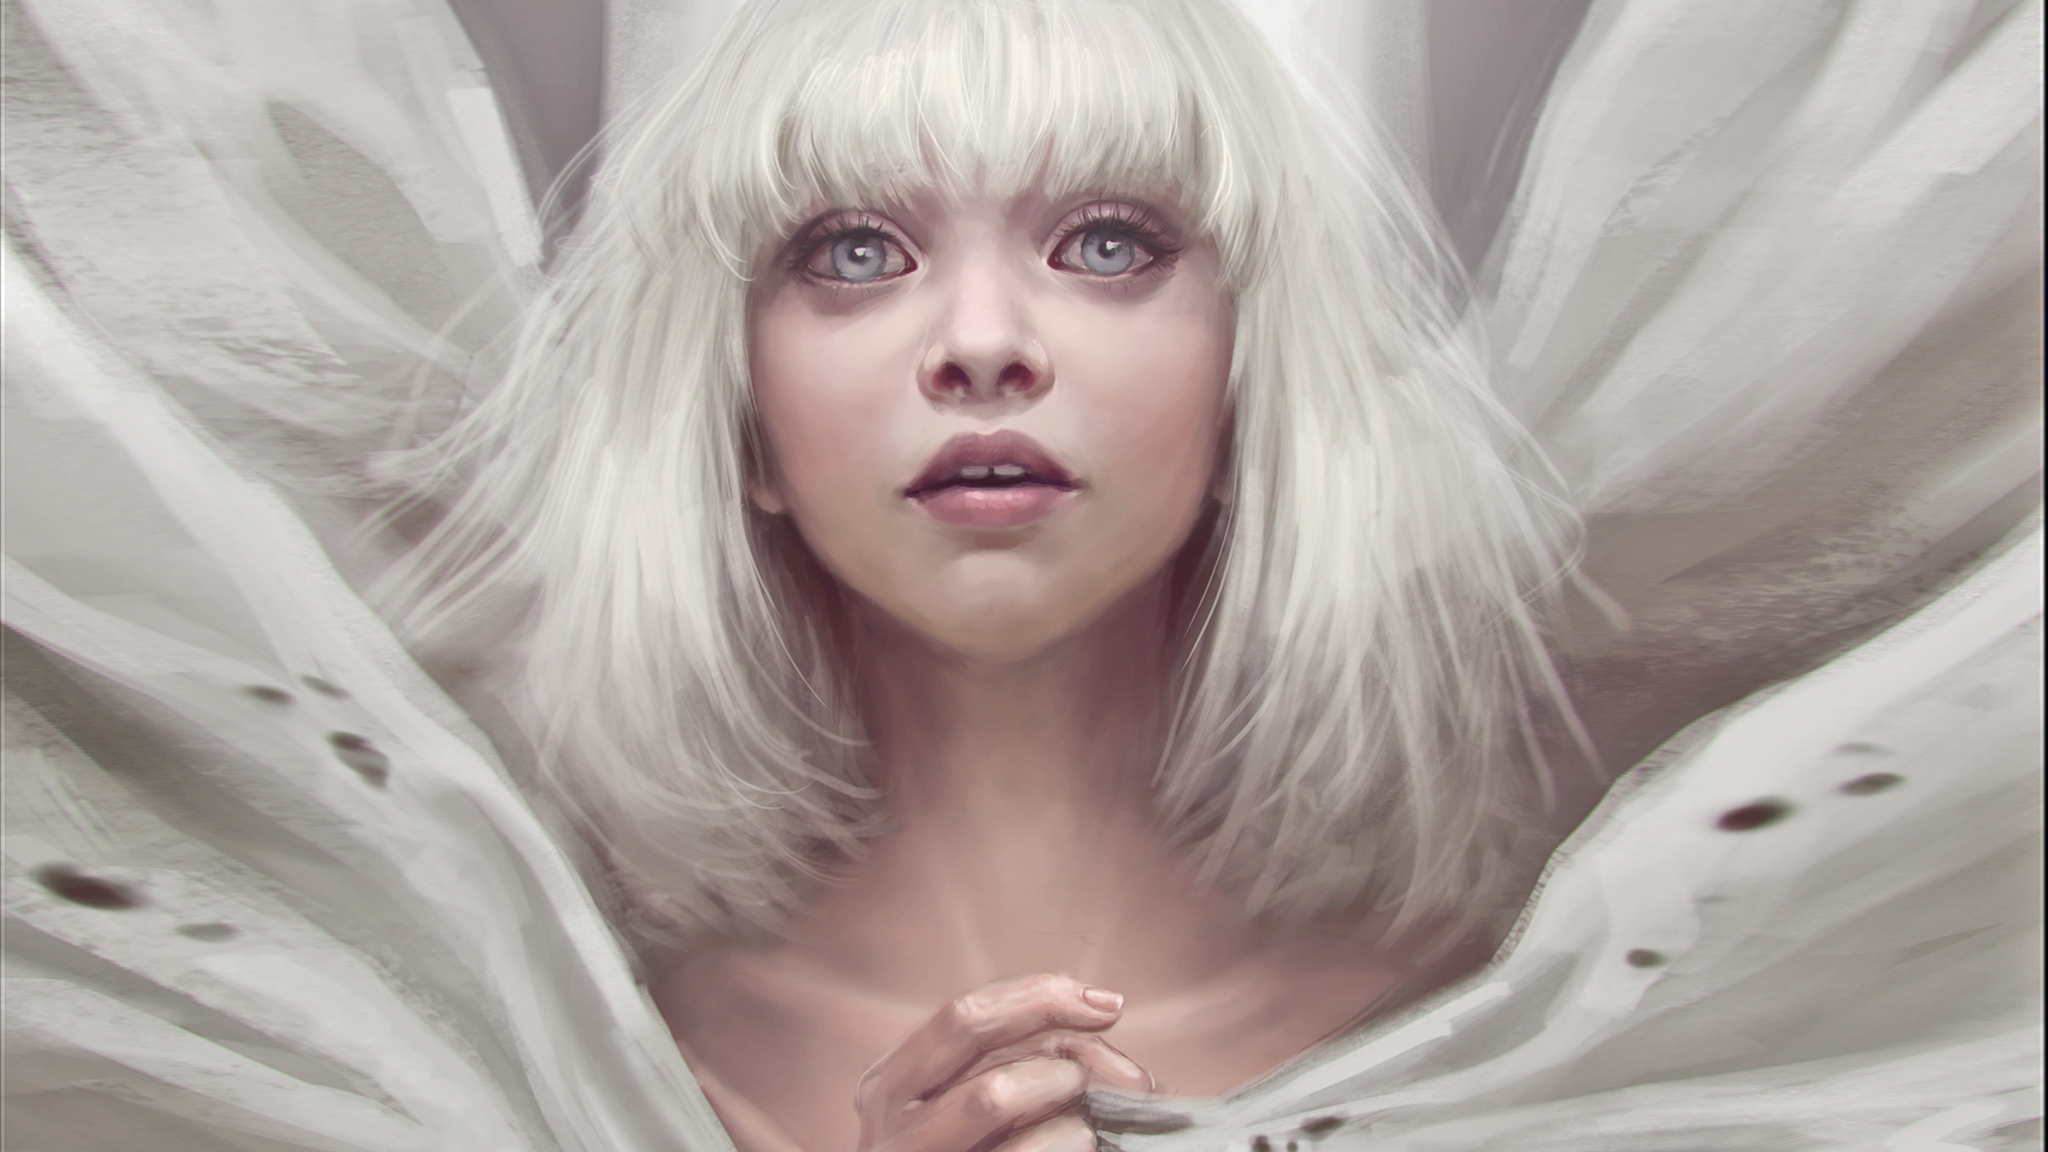 2048x1152 Sia Artwork Resolution HD 4k Wallpapers Images